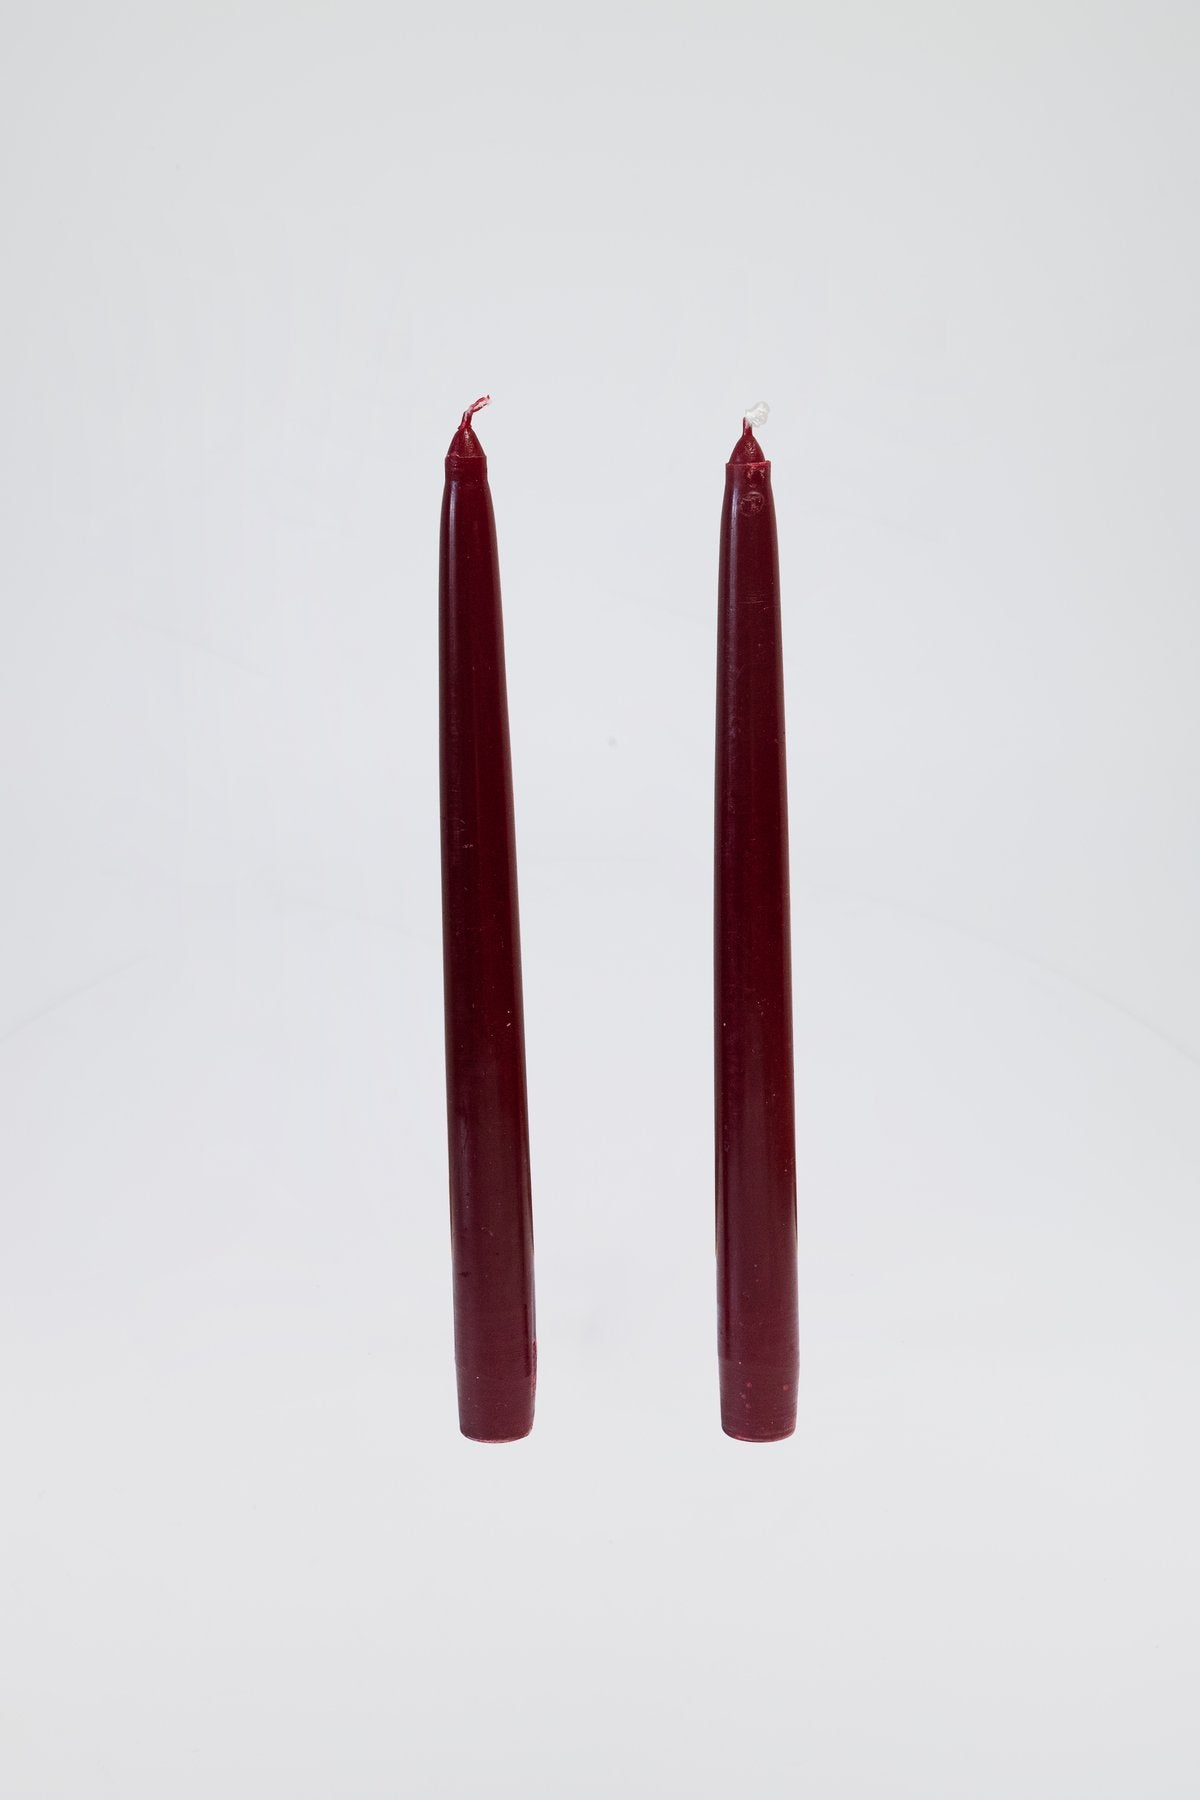 Dinner Candles, Burgundy, Pair